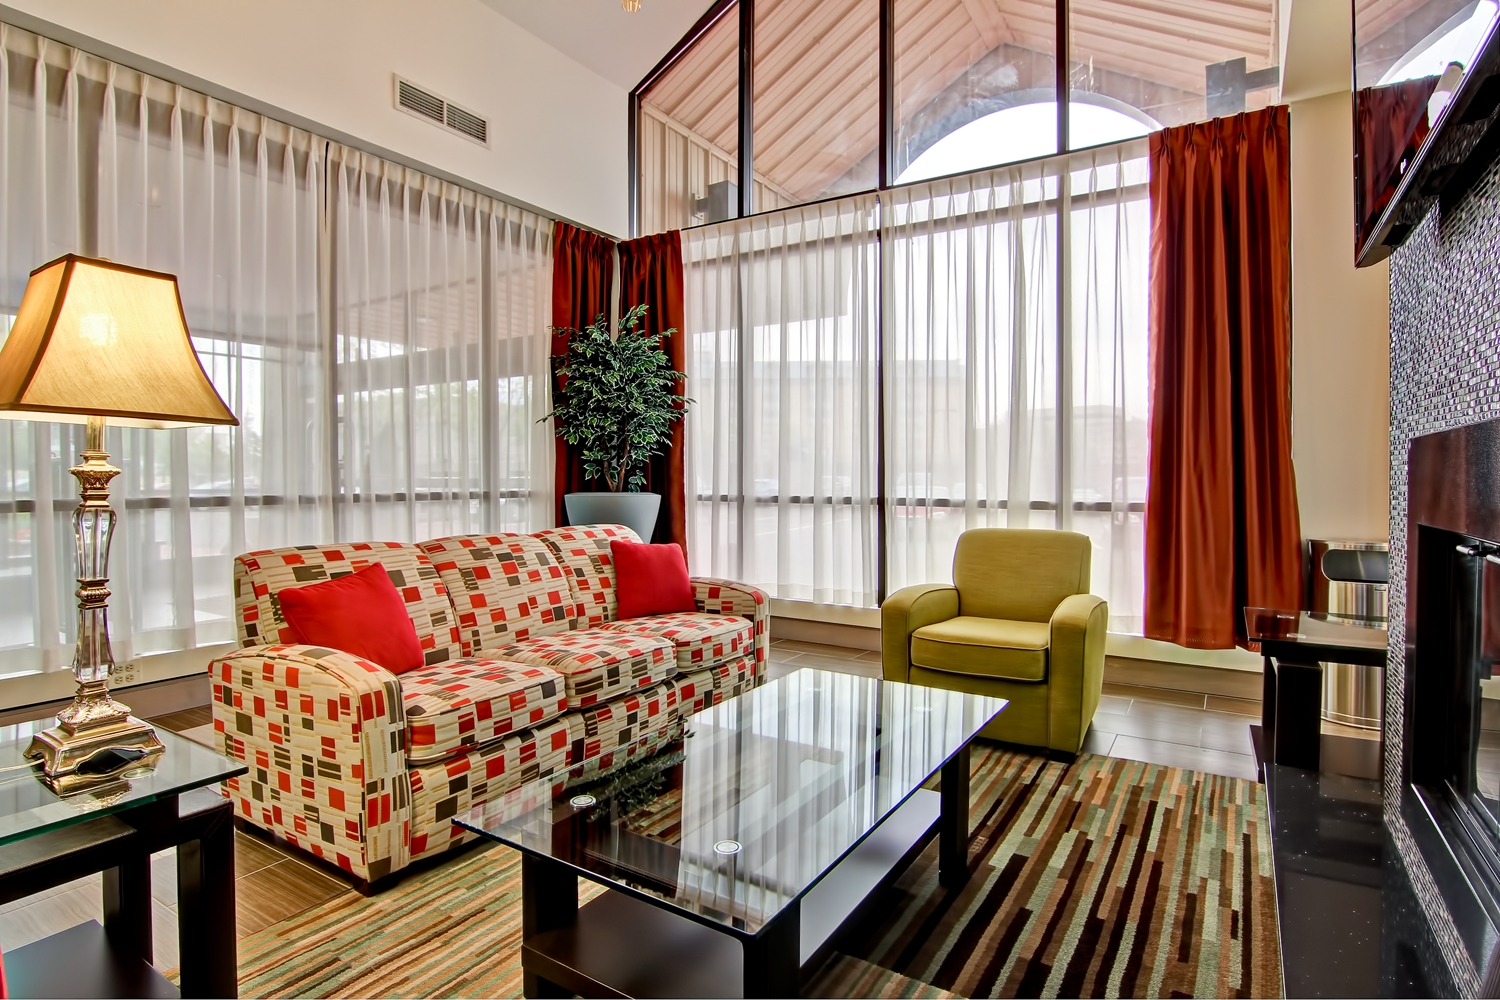 Inexpensive Hotels In Toronto